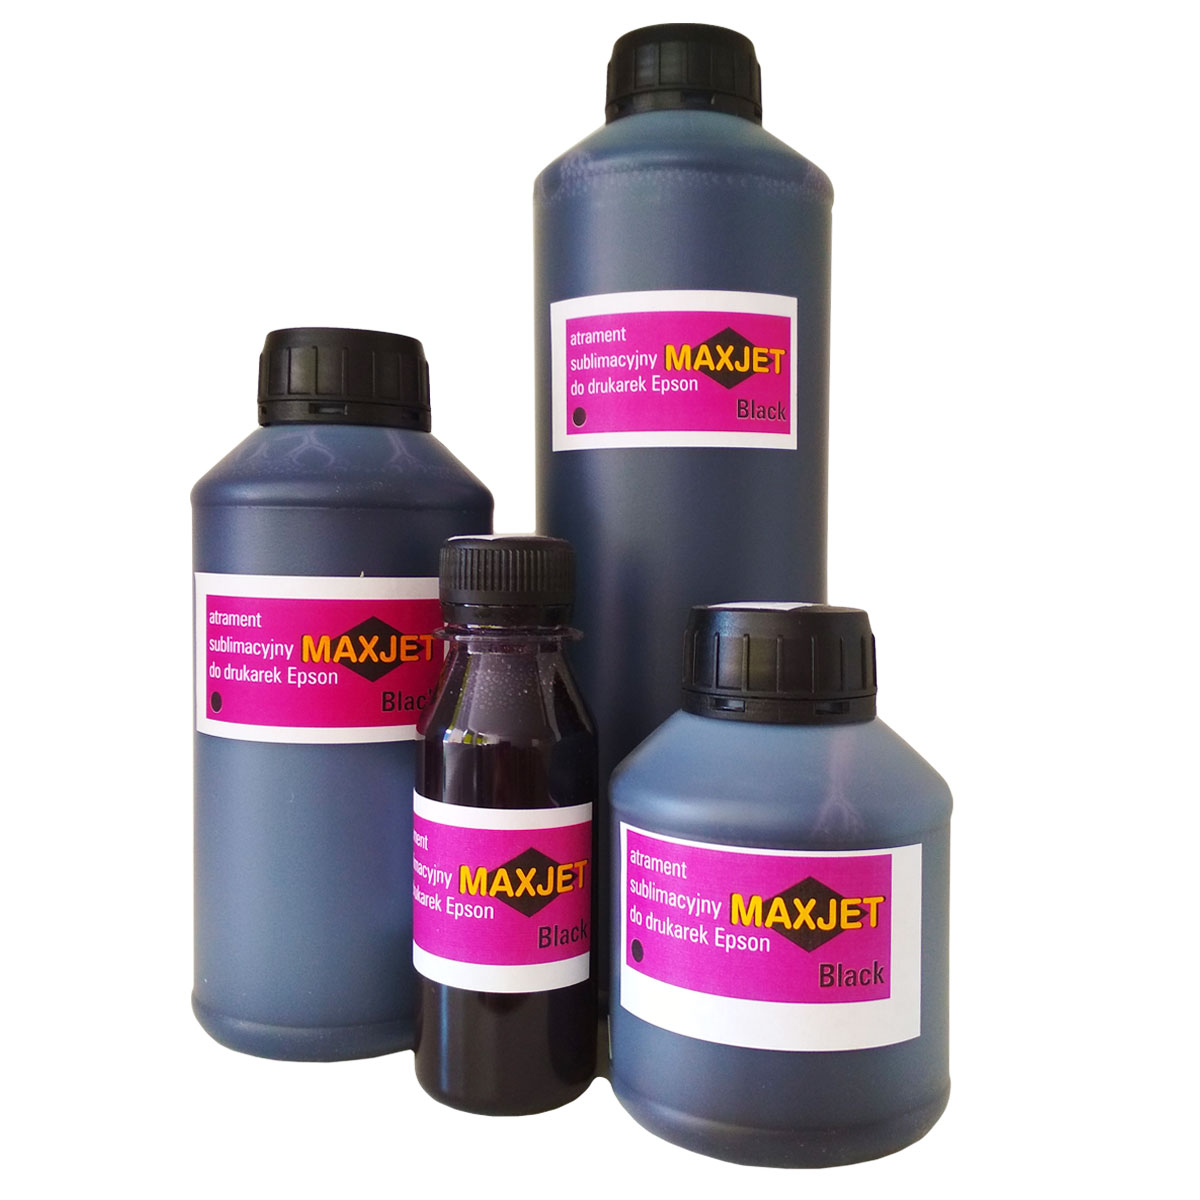 Sublimation ink for Epson printers